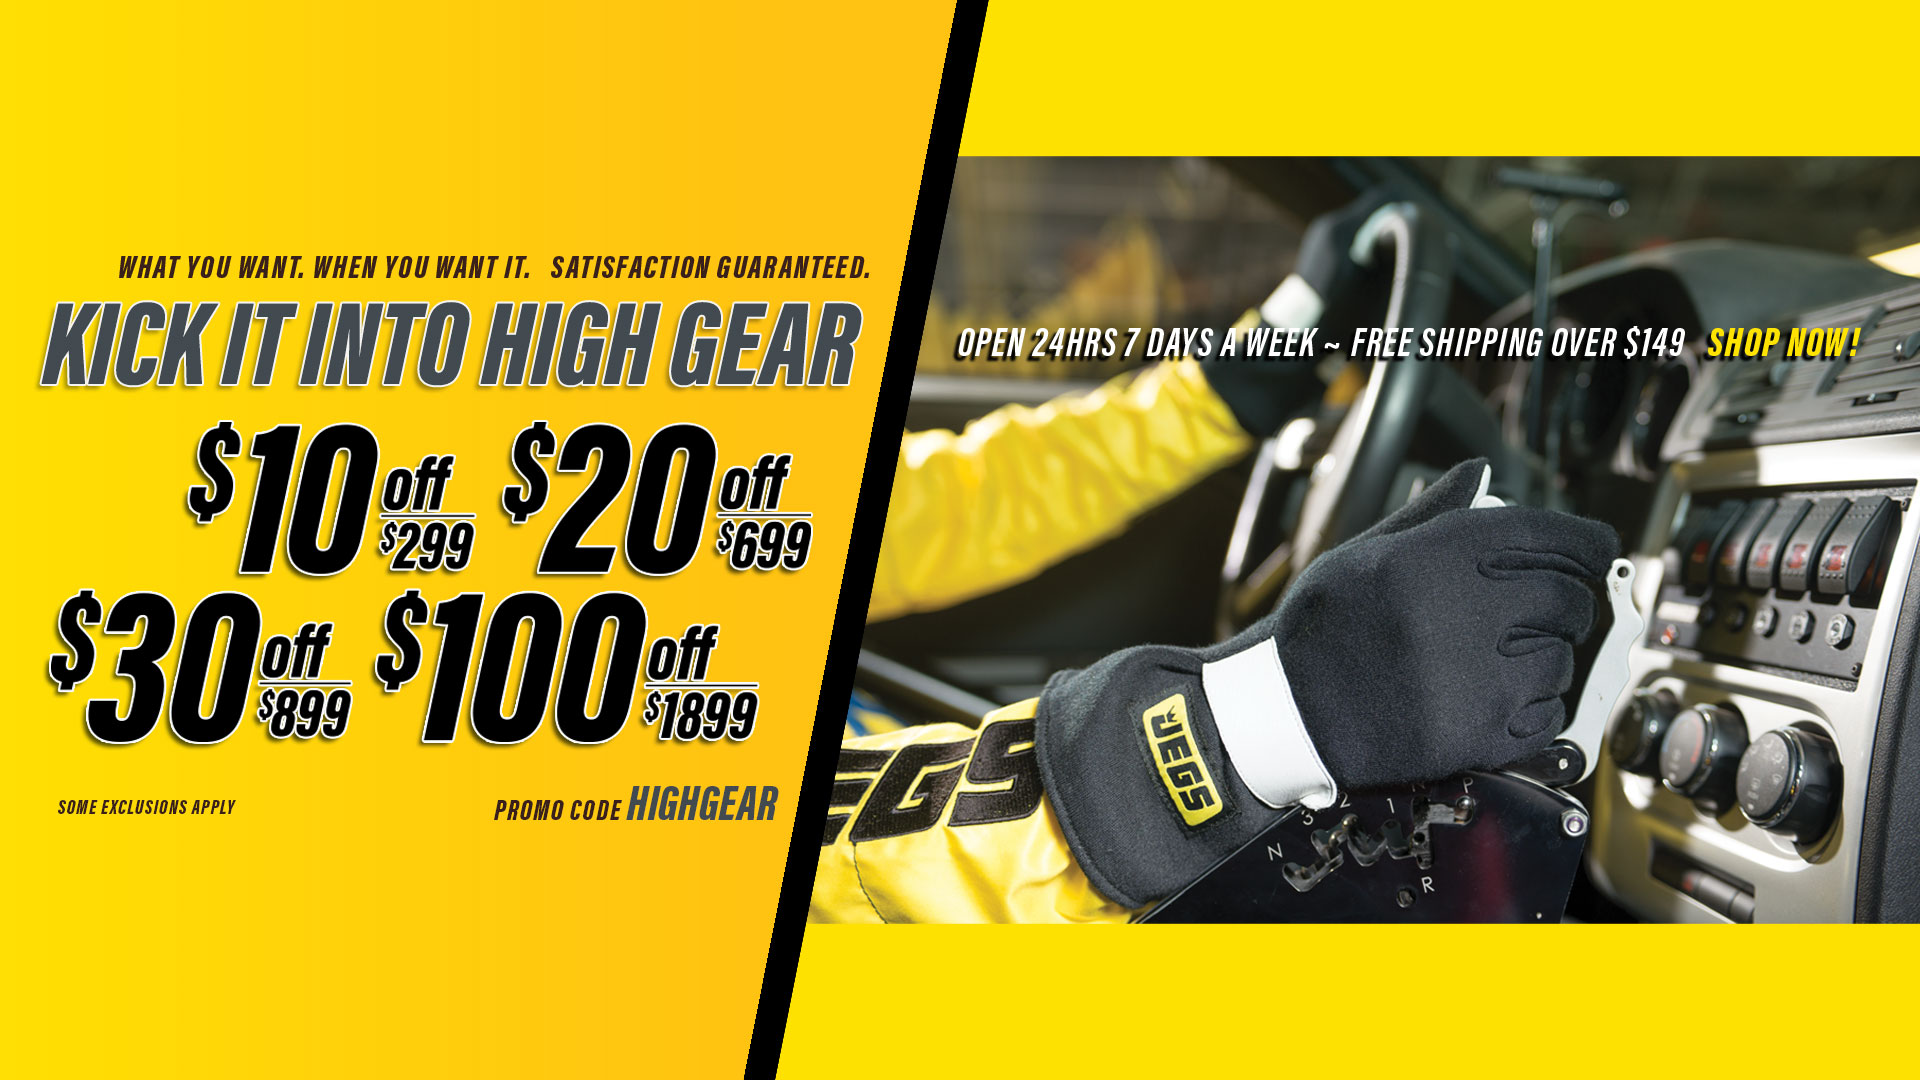 Save $10 Off $299, $20 Off $699, $30 Off $899, $100 Off $1,899 Orders - Promo Code: HIGHGEAR